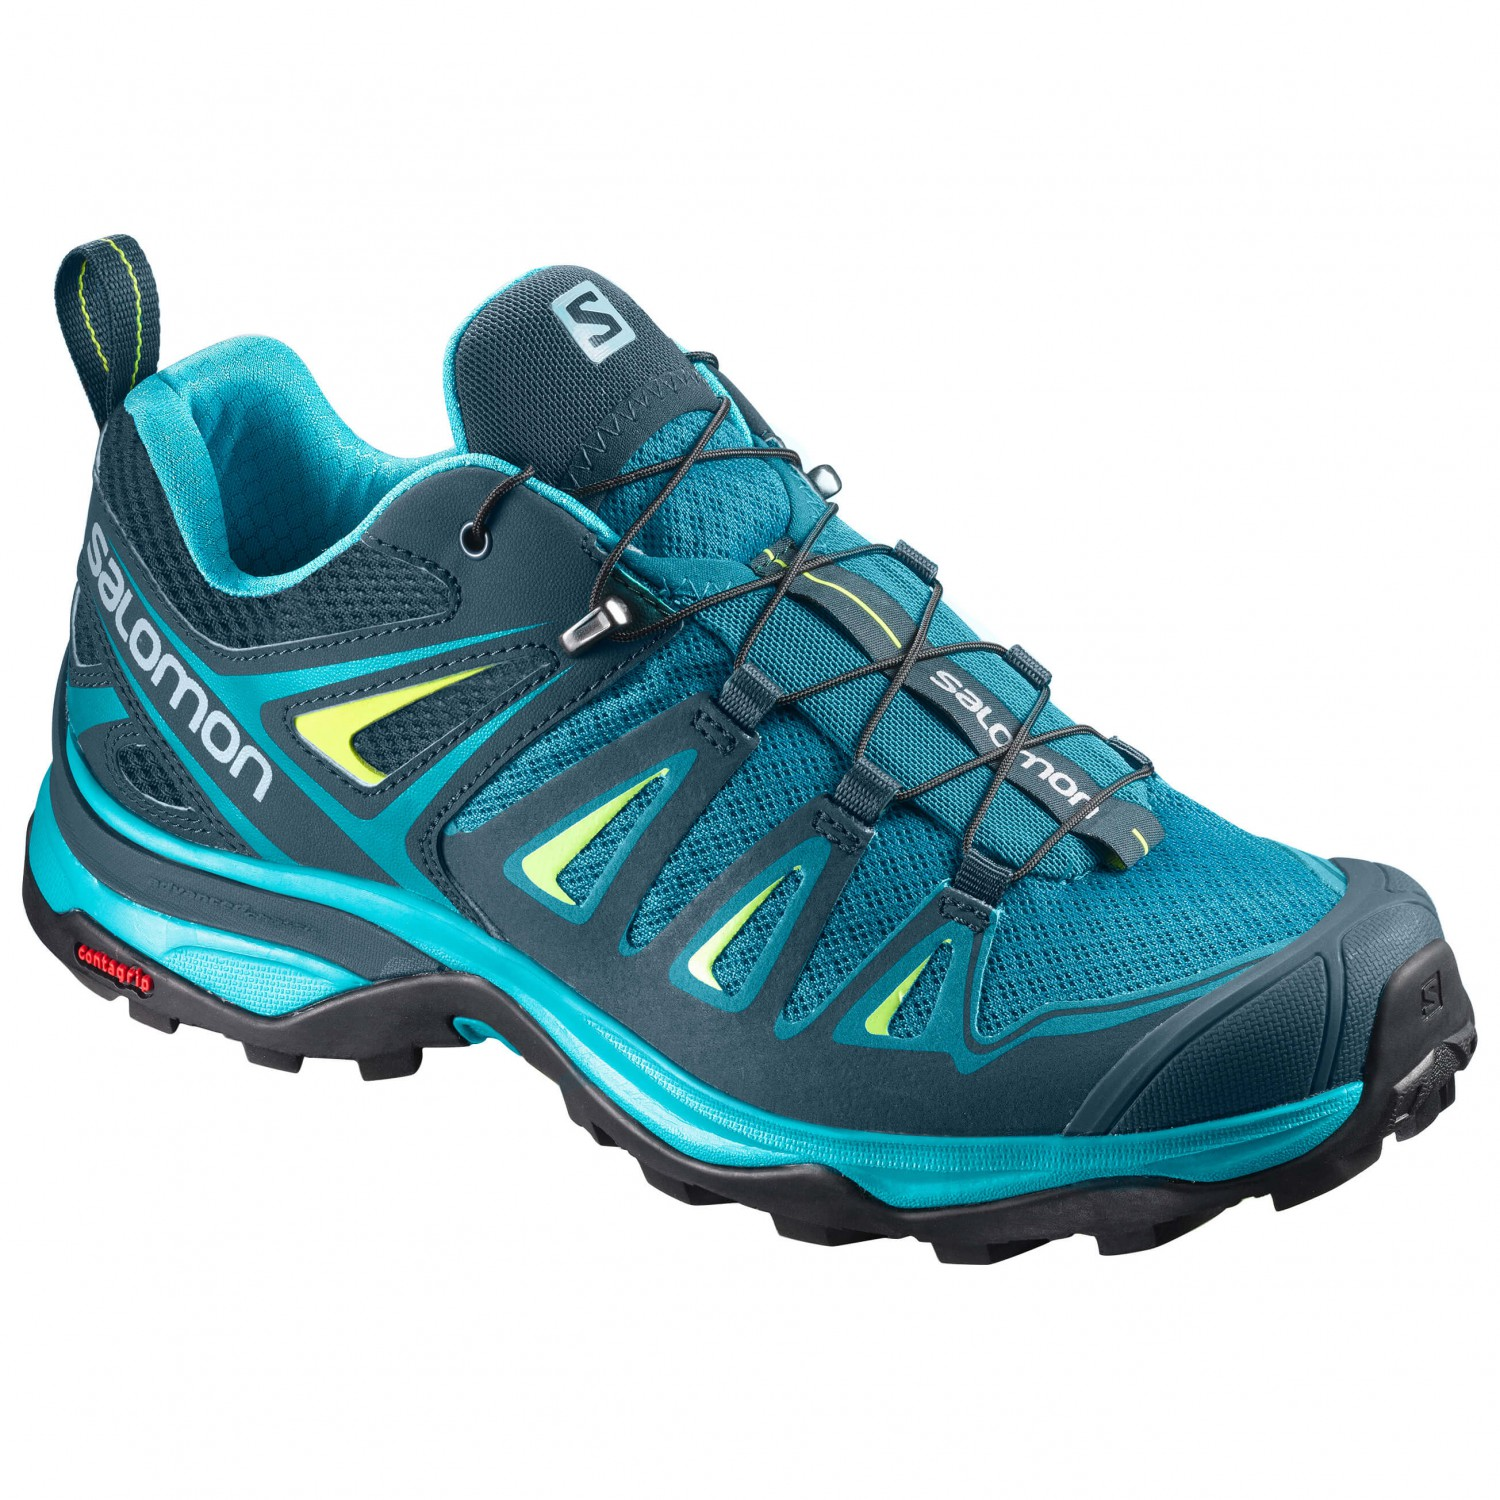 Salomon - Women's X Ultra 3 - Multisportschuhe Tahitian Tide / Reflecting Pond / Lime Punch